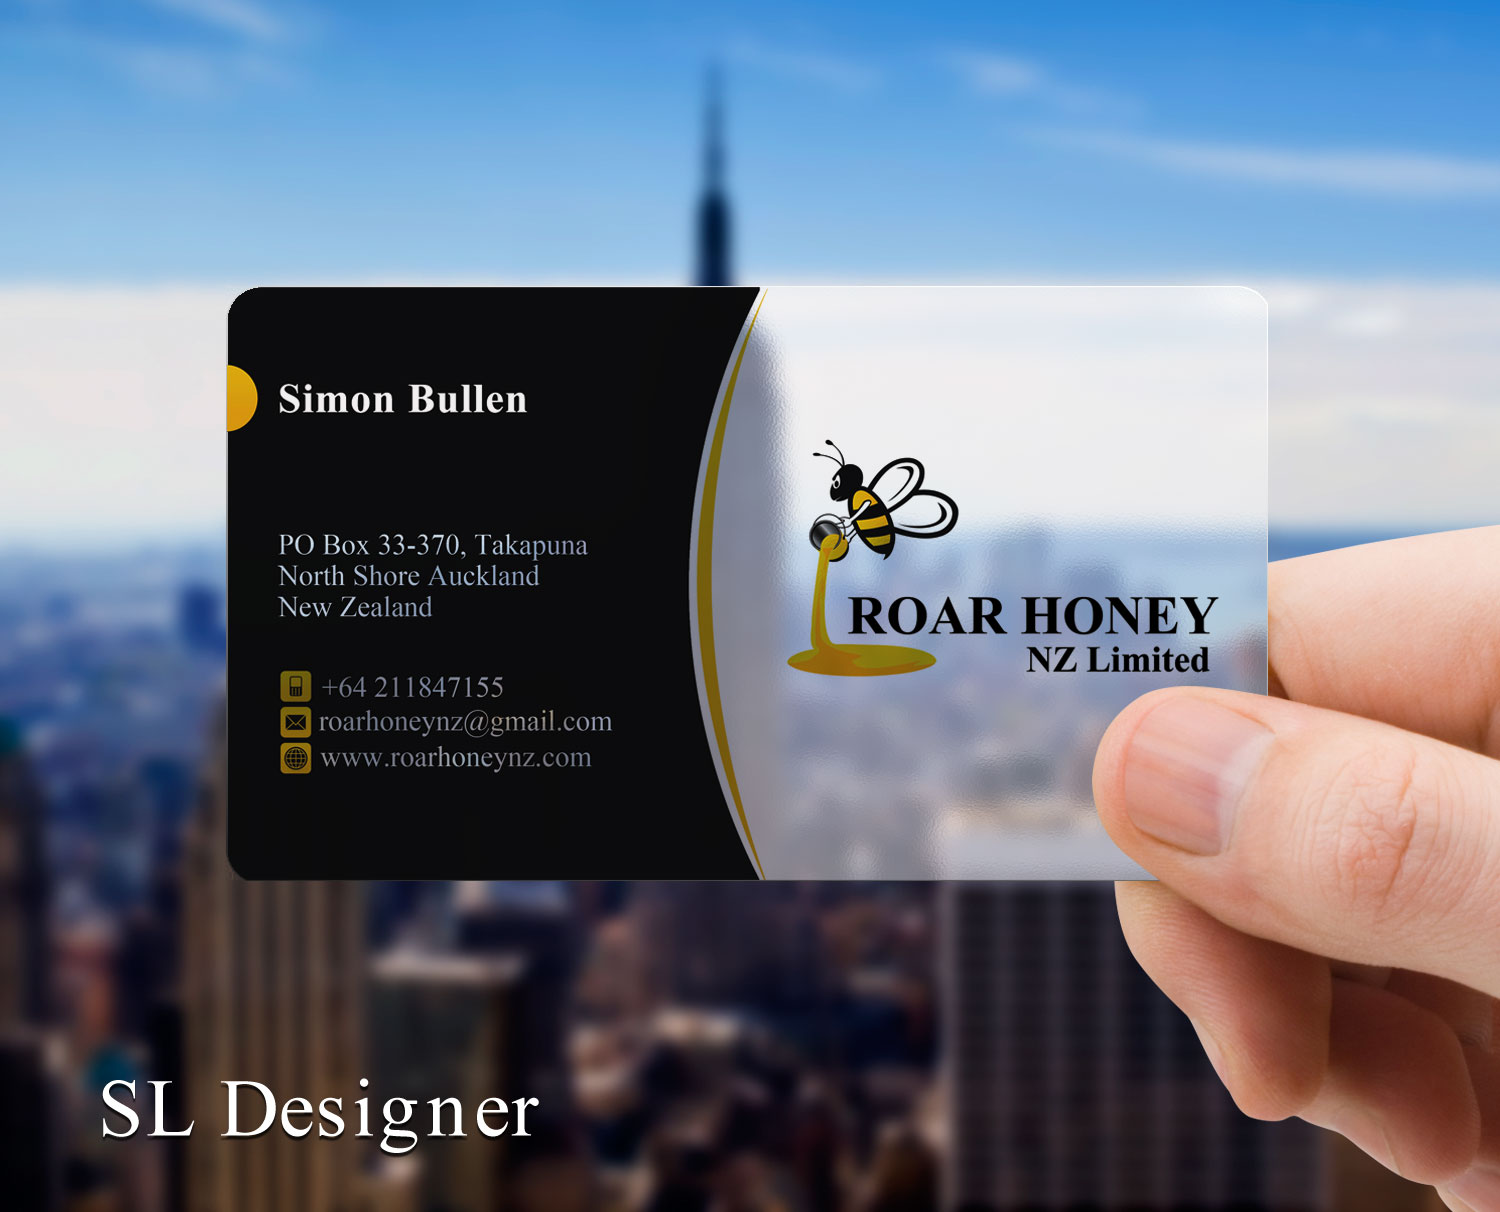 Modern professional wholesale business card design for roar honey business card design by sl designer for roar honey nz limited design 13831764 reheart Image collections